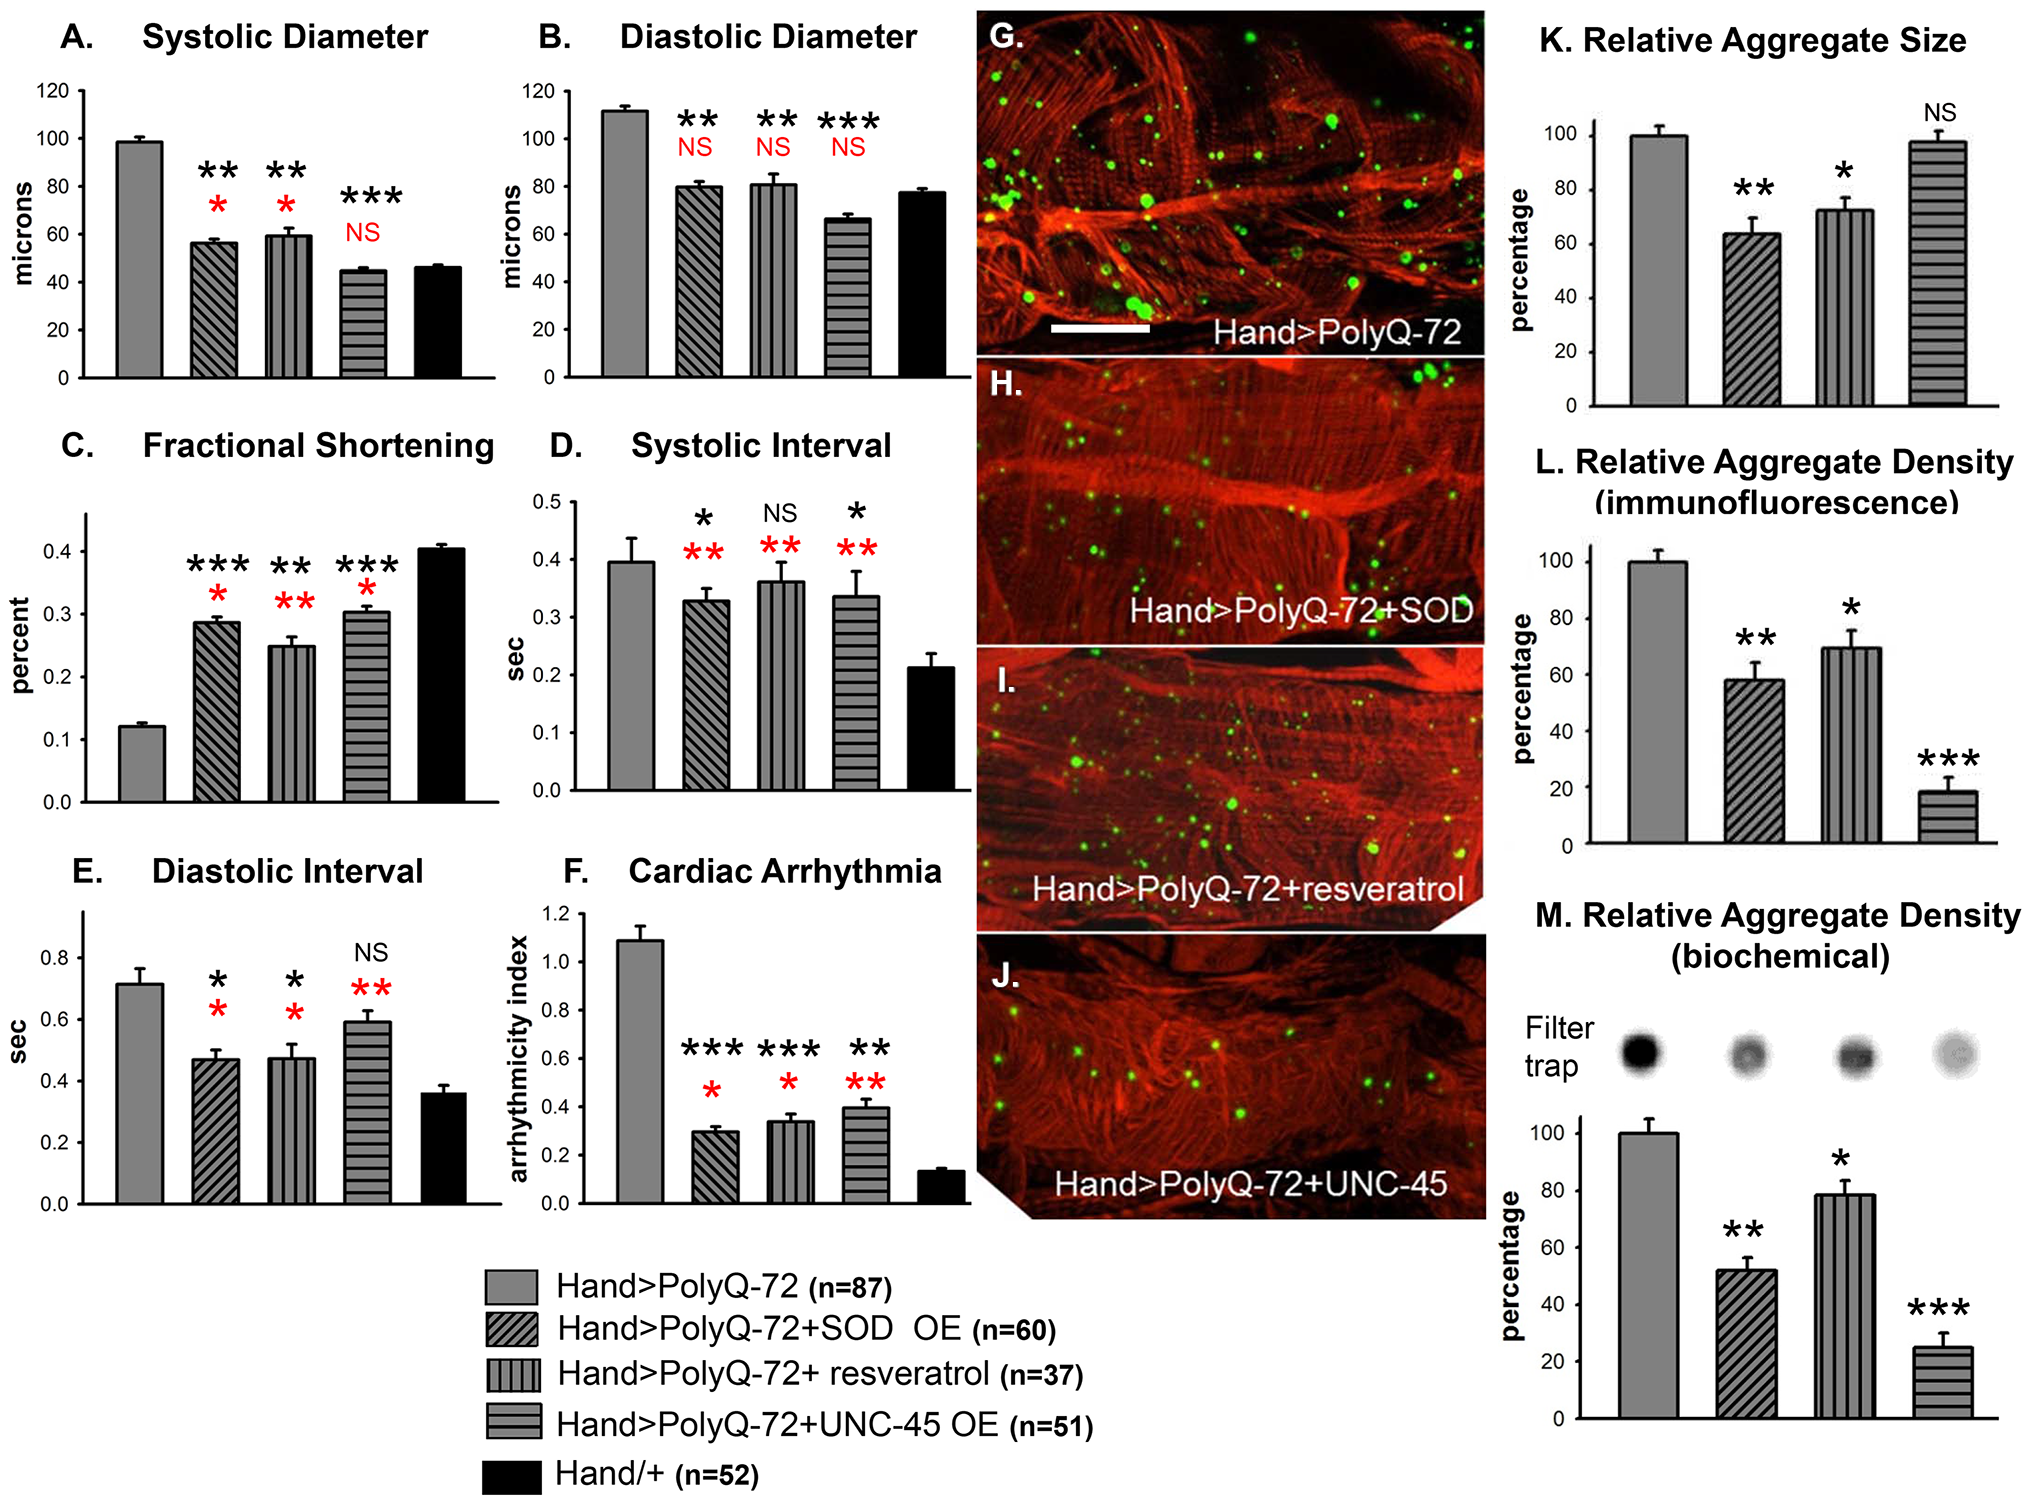 Over-expression of SOD or treatment with resveratrol or over-expression of UNC-45 all rescue PolyQ-72 induced cardiac dysfunction to some extent.